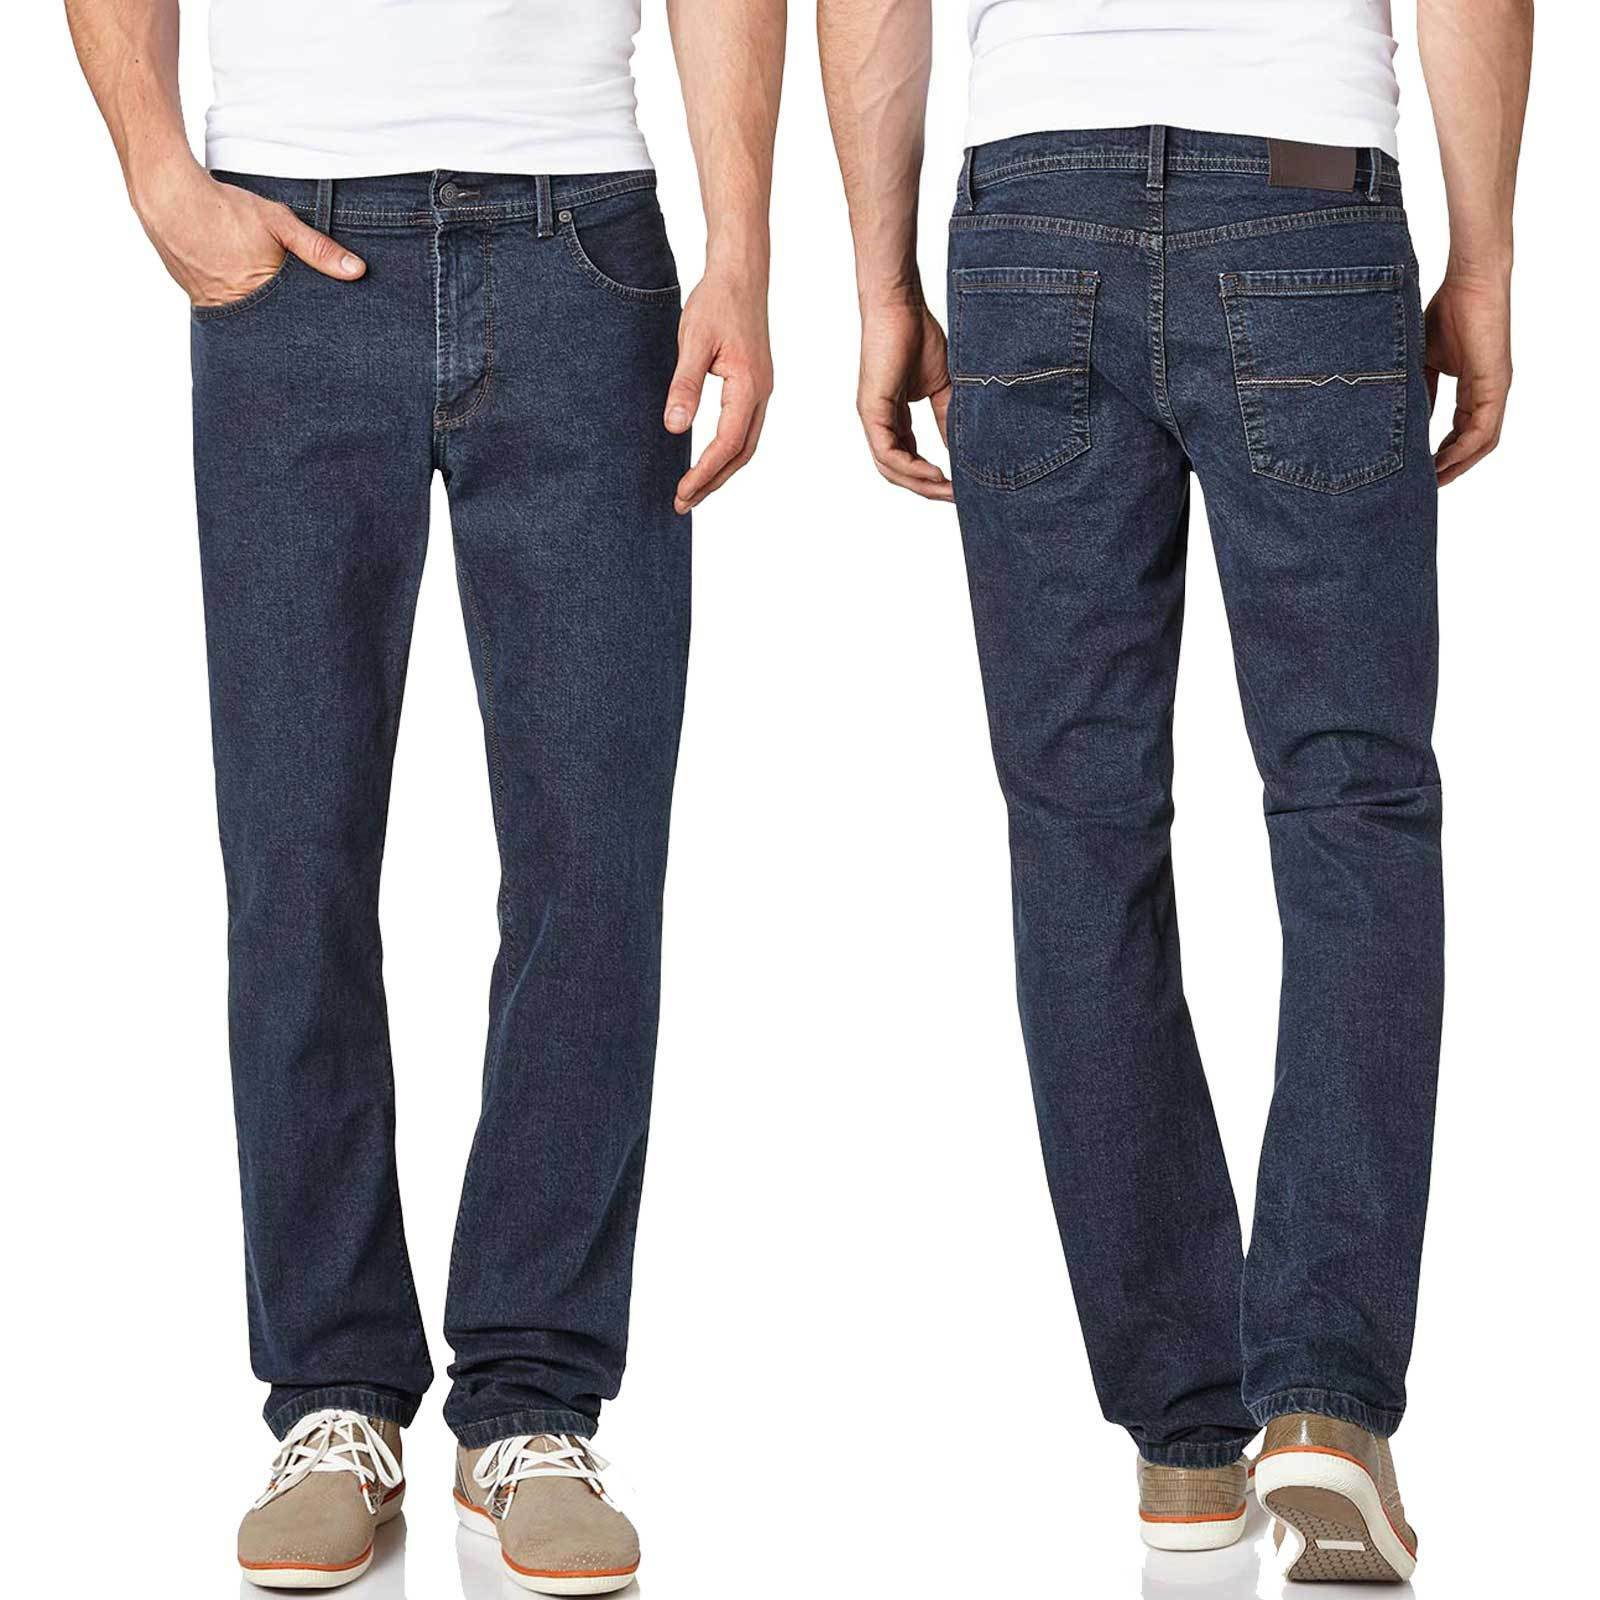 PIONEER  Rando 1680 Perfekte RINSED Waschung  TOP Stretch dunkelblue